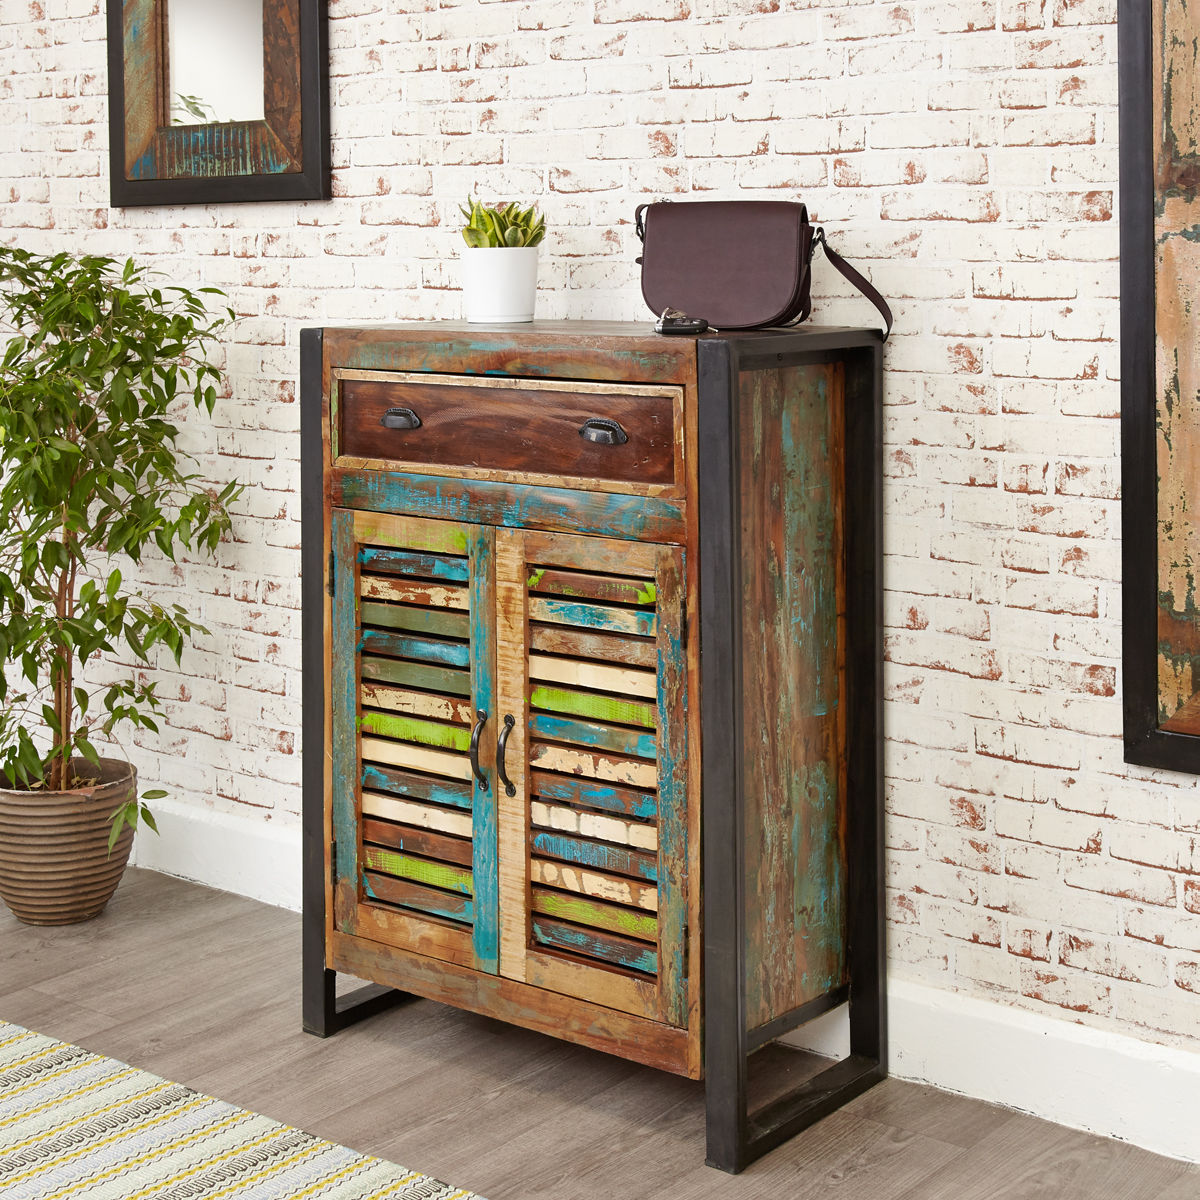 Urban Chic Shoe Storage Cupboard With Drawer Wooden Furniture Store